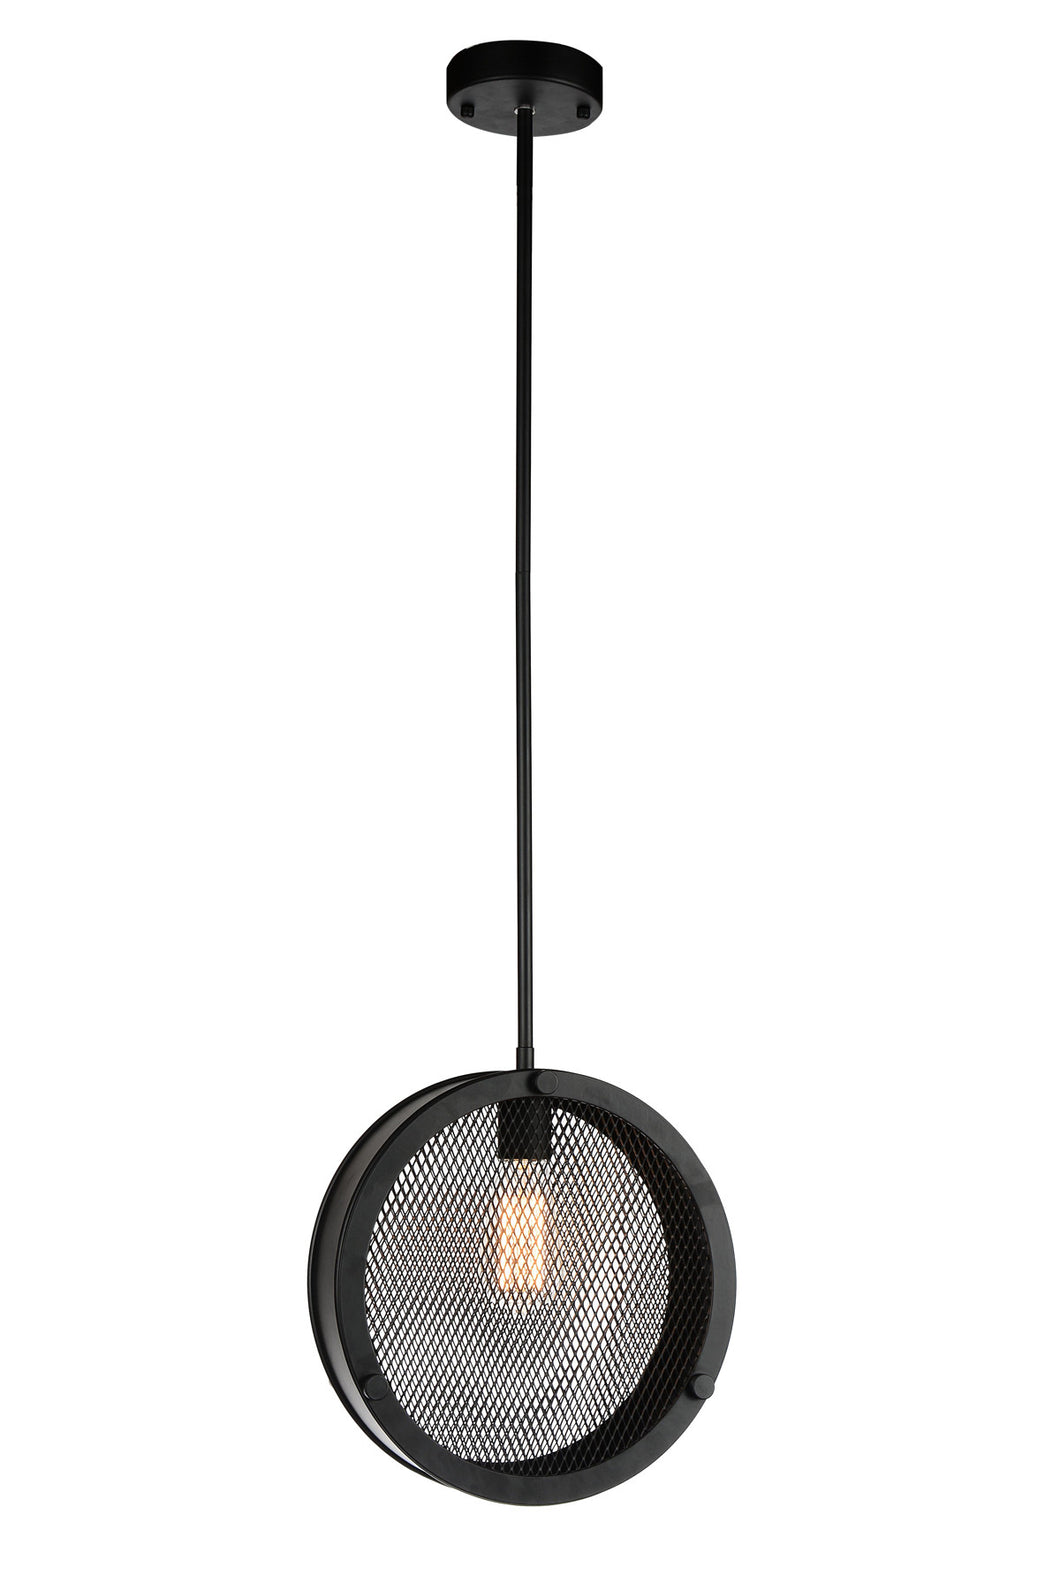 1 Light Up Pendant with Black finish